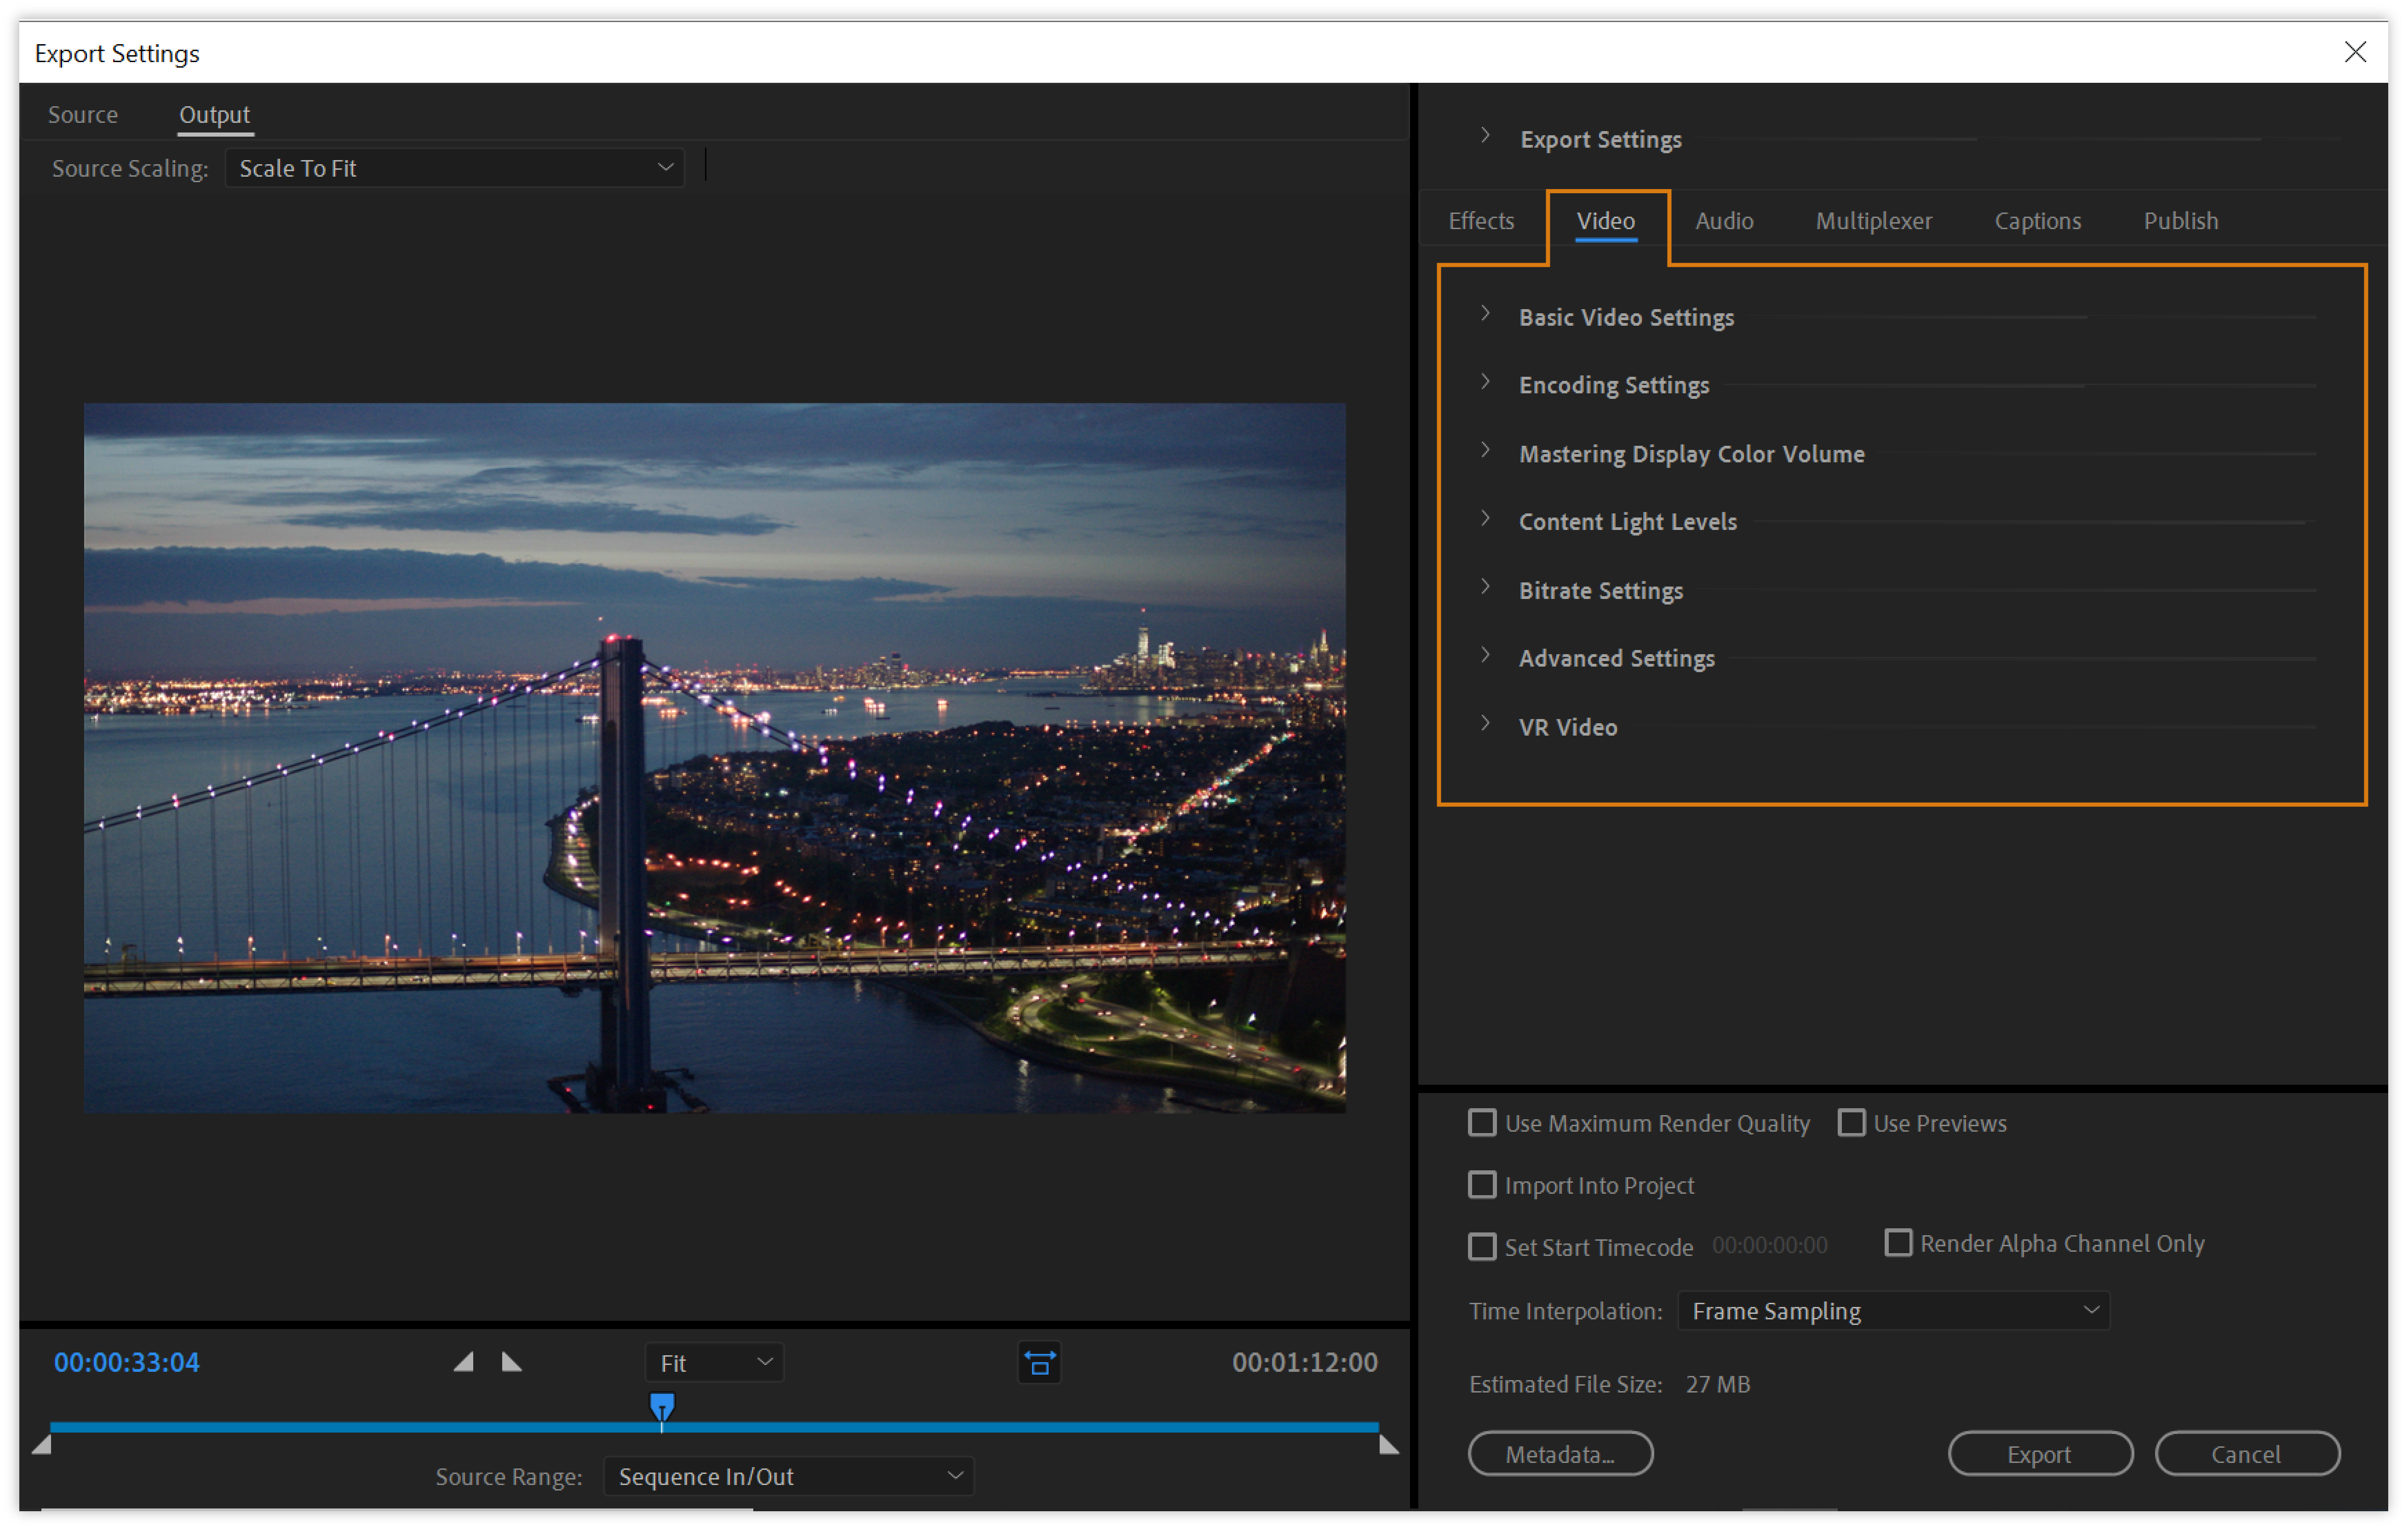 Video export settings